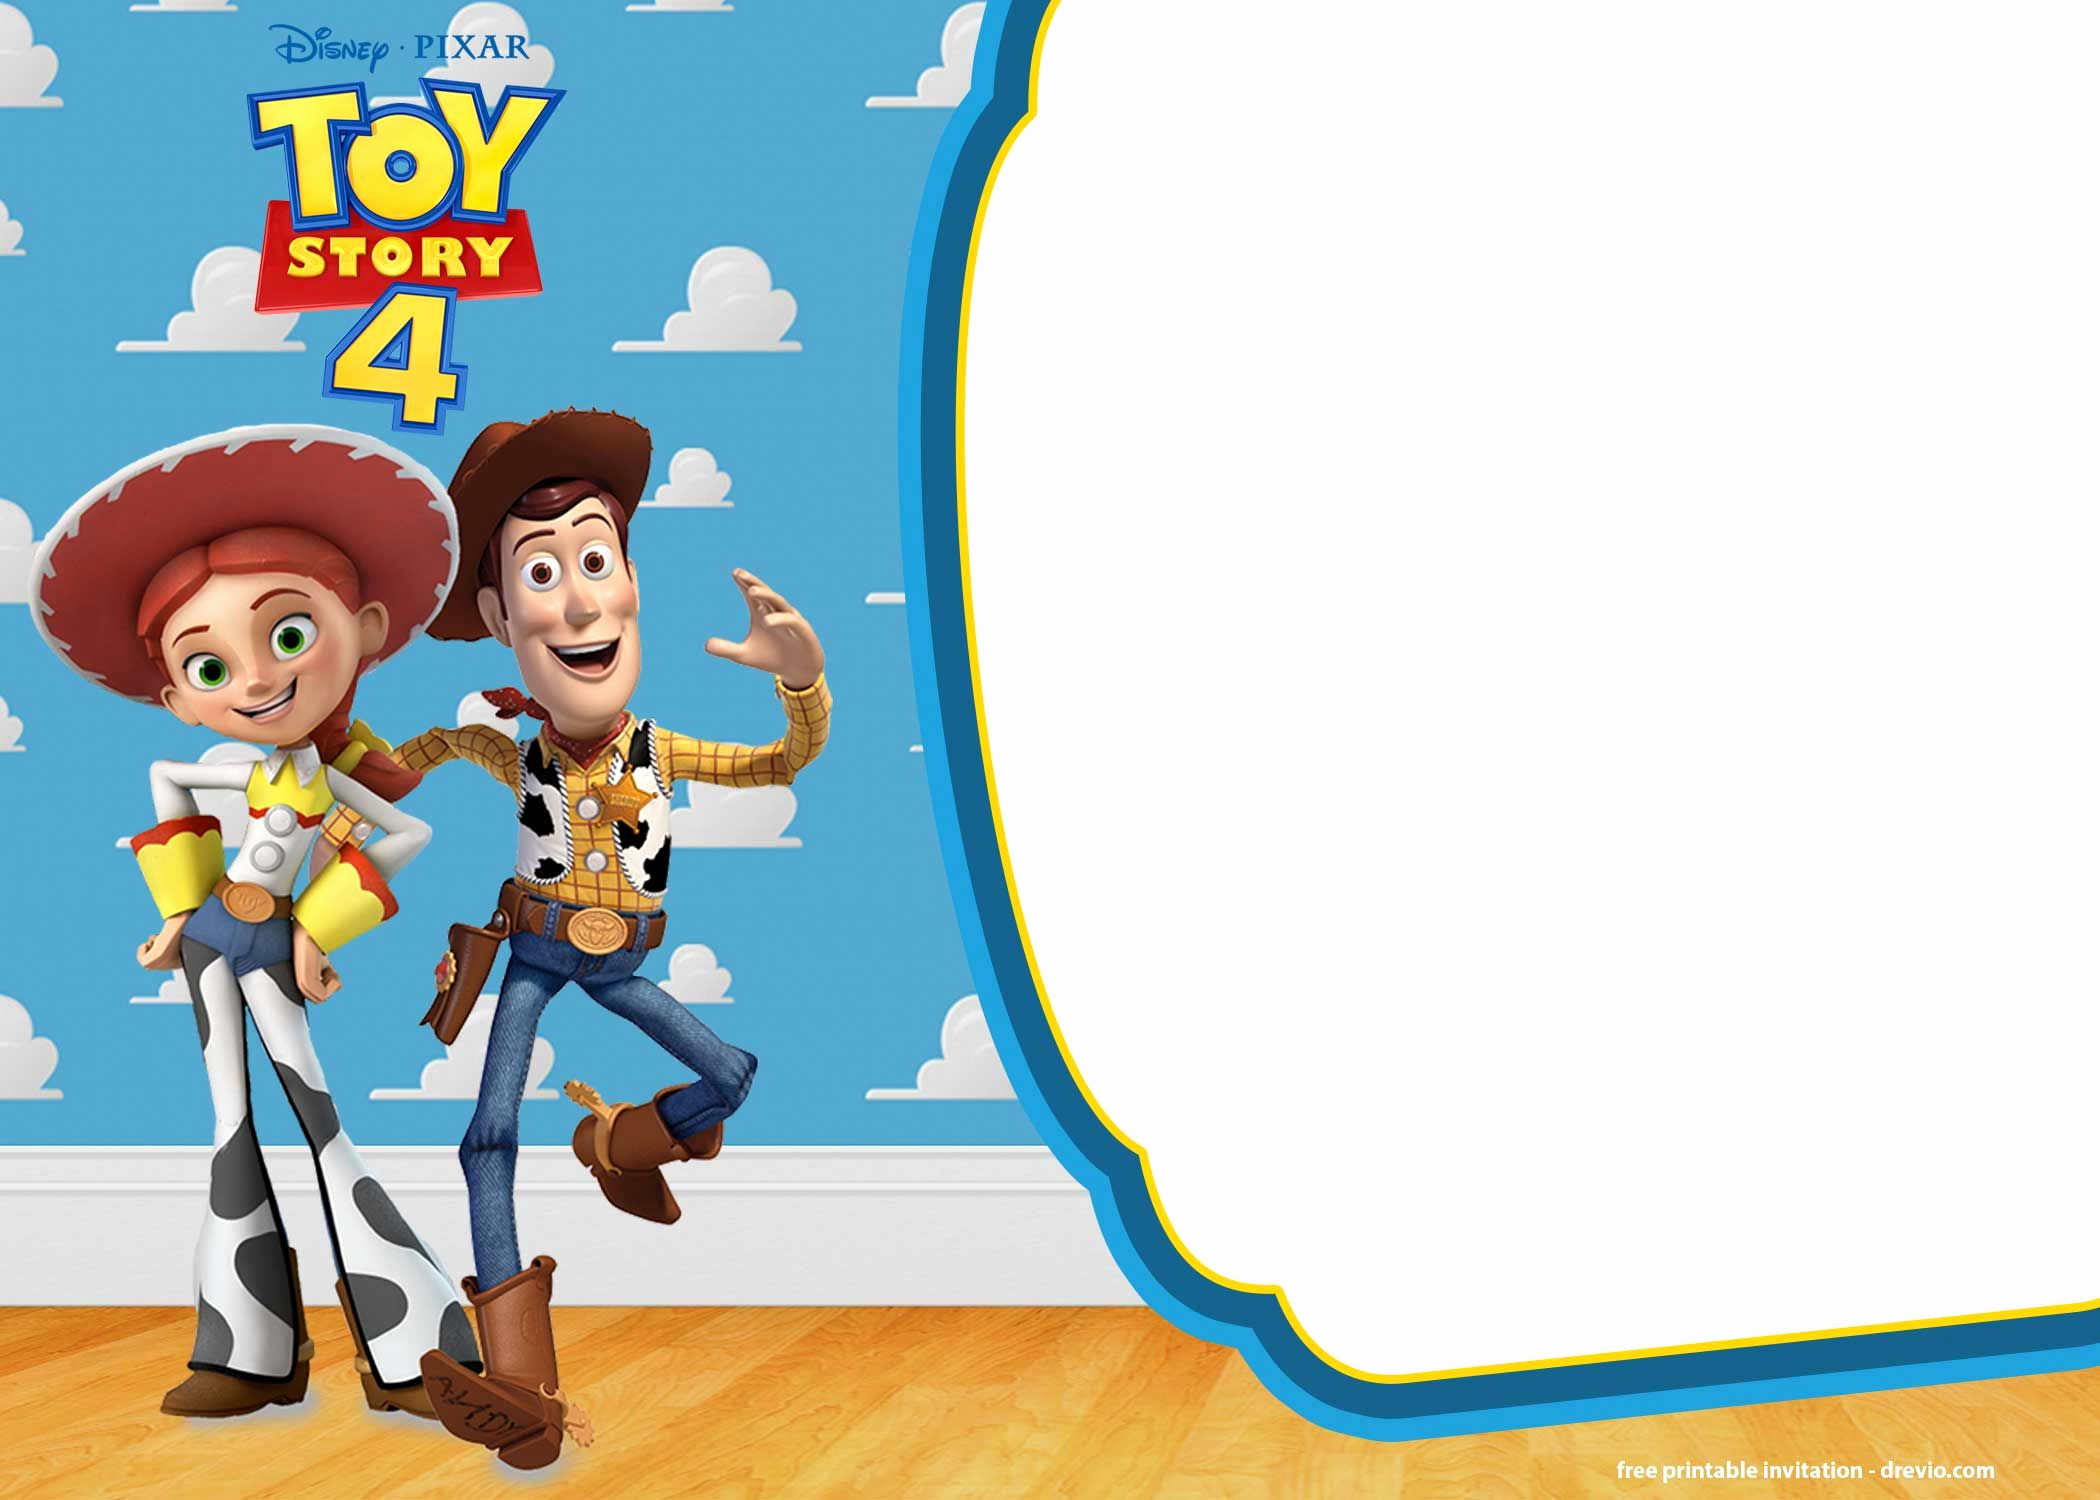 Toy Story Invitation Template Free Best Of Free Printable toy Story 4 Invitation